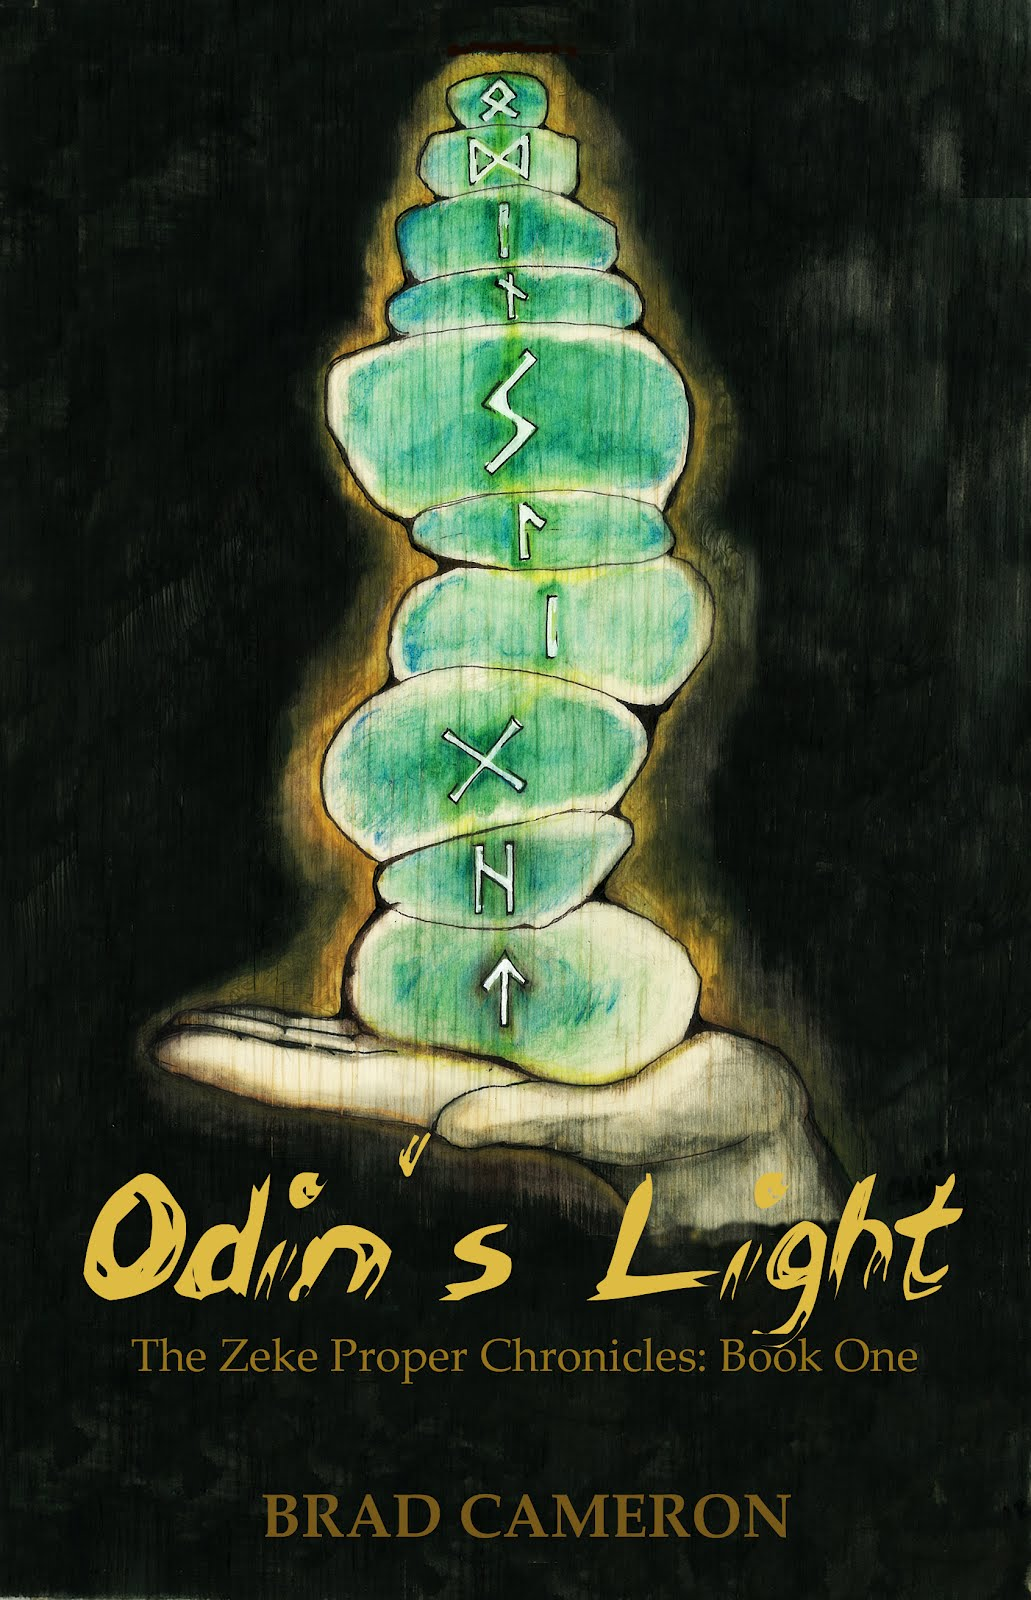 http://www.amazon.com/Odins-Light-Zeke-Proper-Chronicles-ebook/dp/B007NCIRMQ/ref=sr_1_1?s=digital-text&ie=UTF8&qid=1397755743&sr=1-1&keywords=Odin%27s+Light